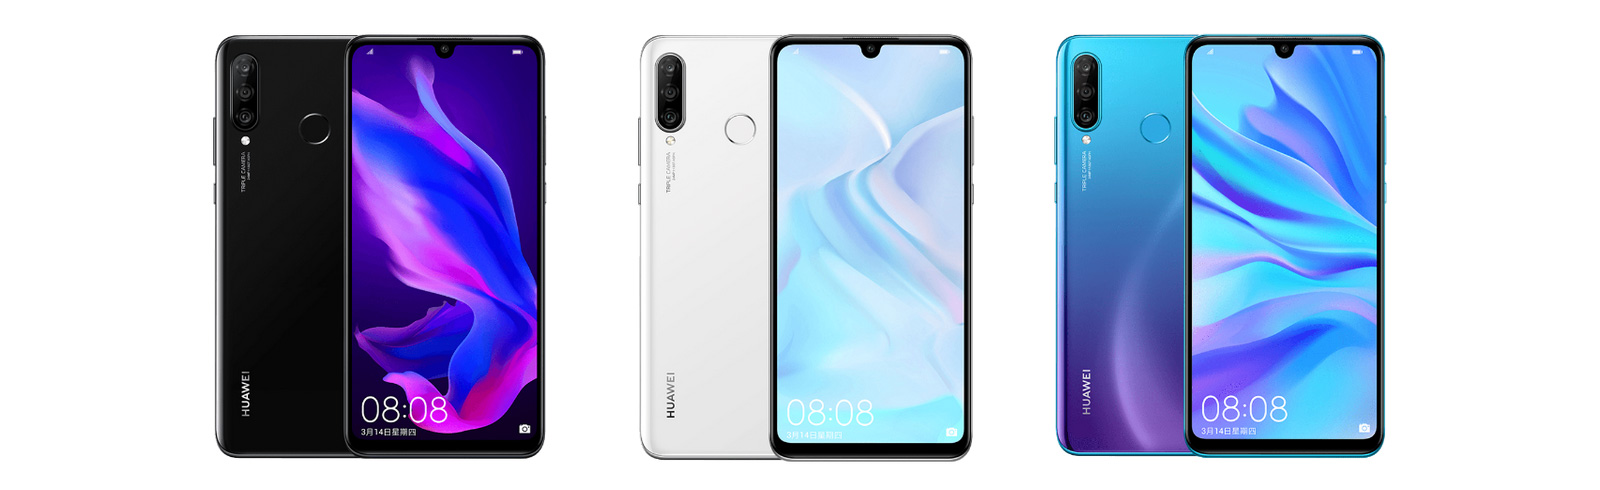 Huawei nova 4e goes official priced at $297